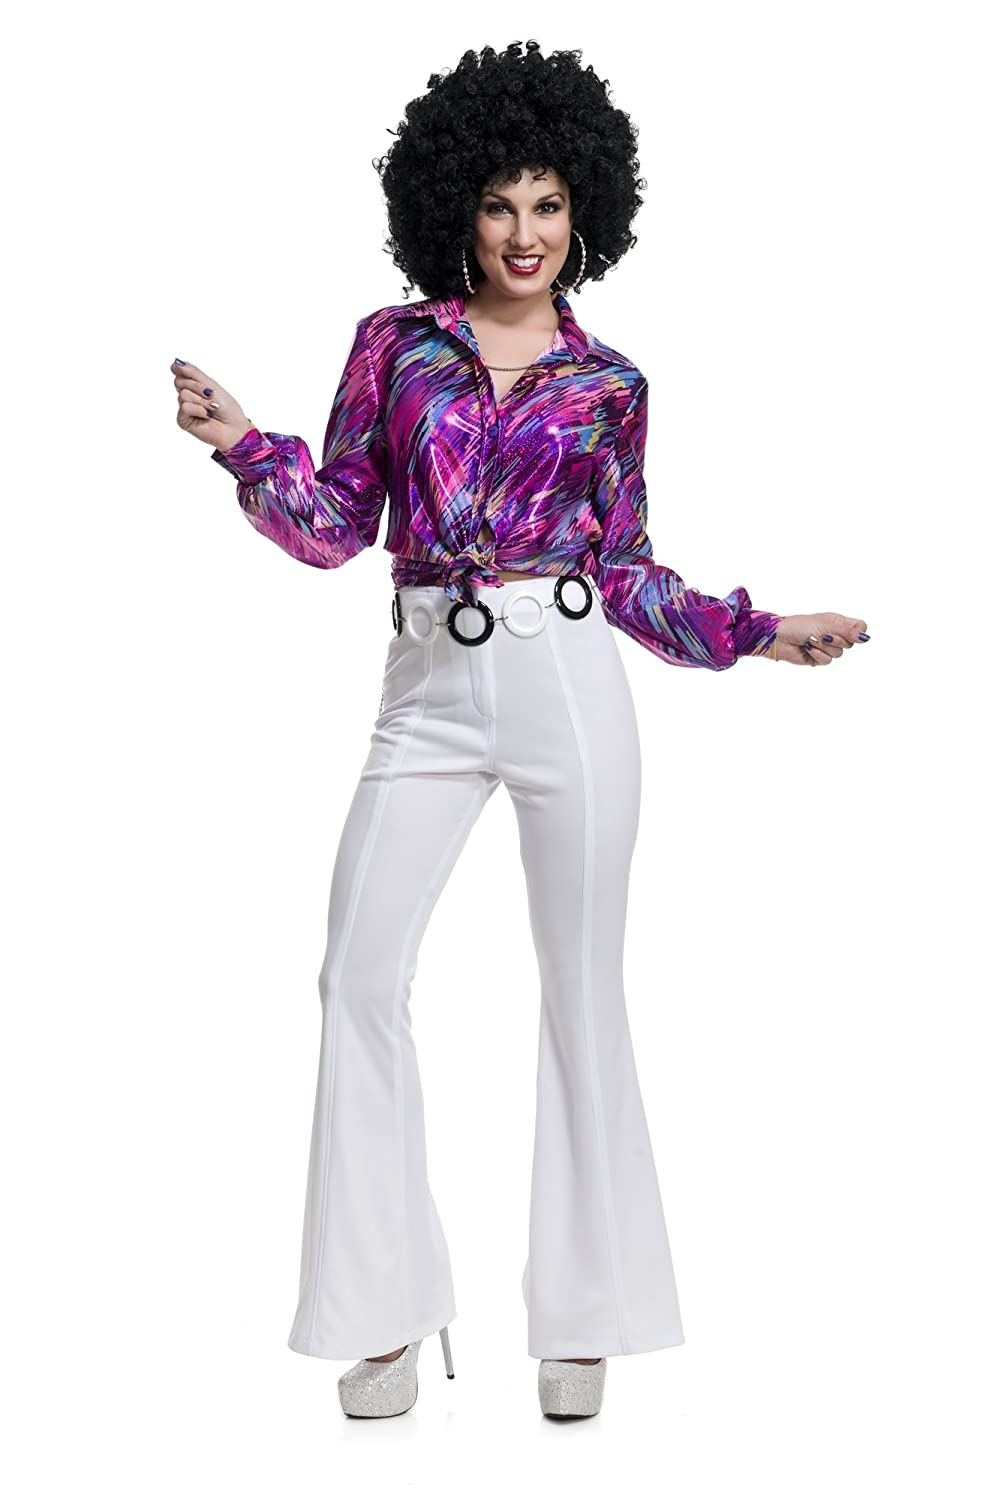 70s Outfits – 70s Style Ideas for Women  1970s Disco Pants $49.99 AT vintagedancer.com